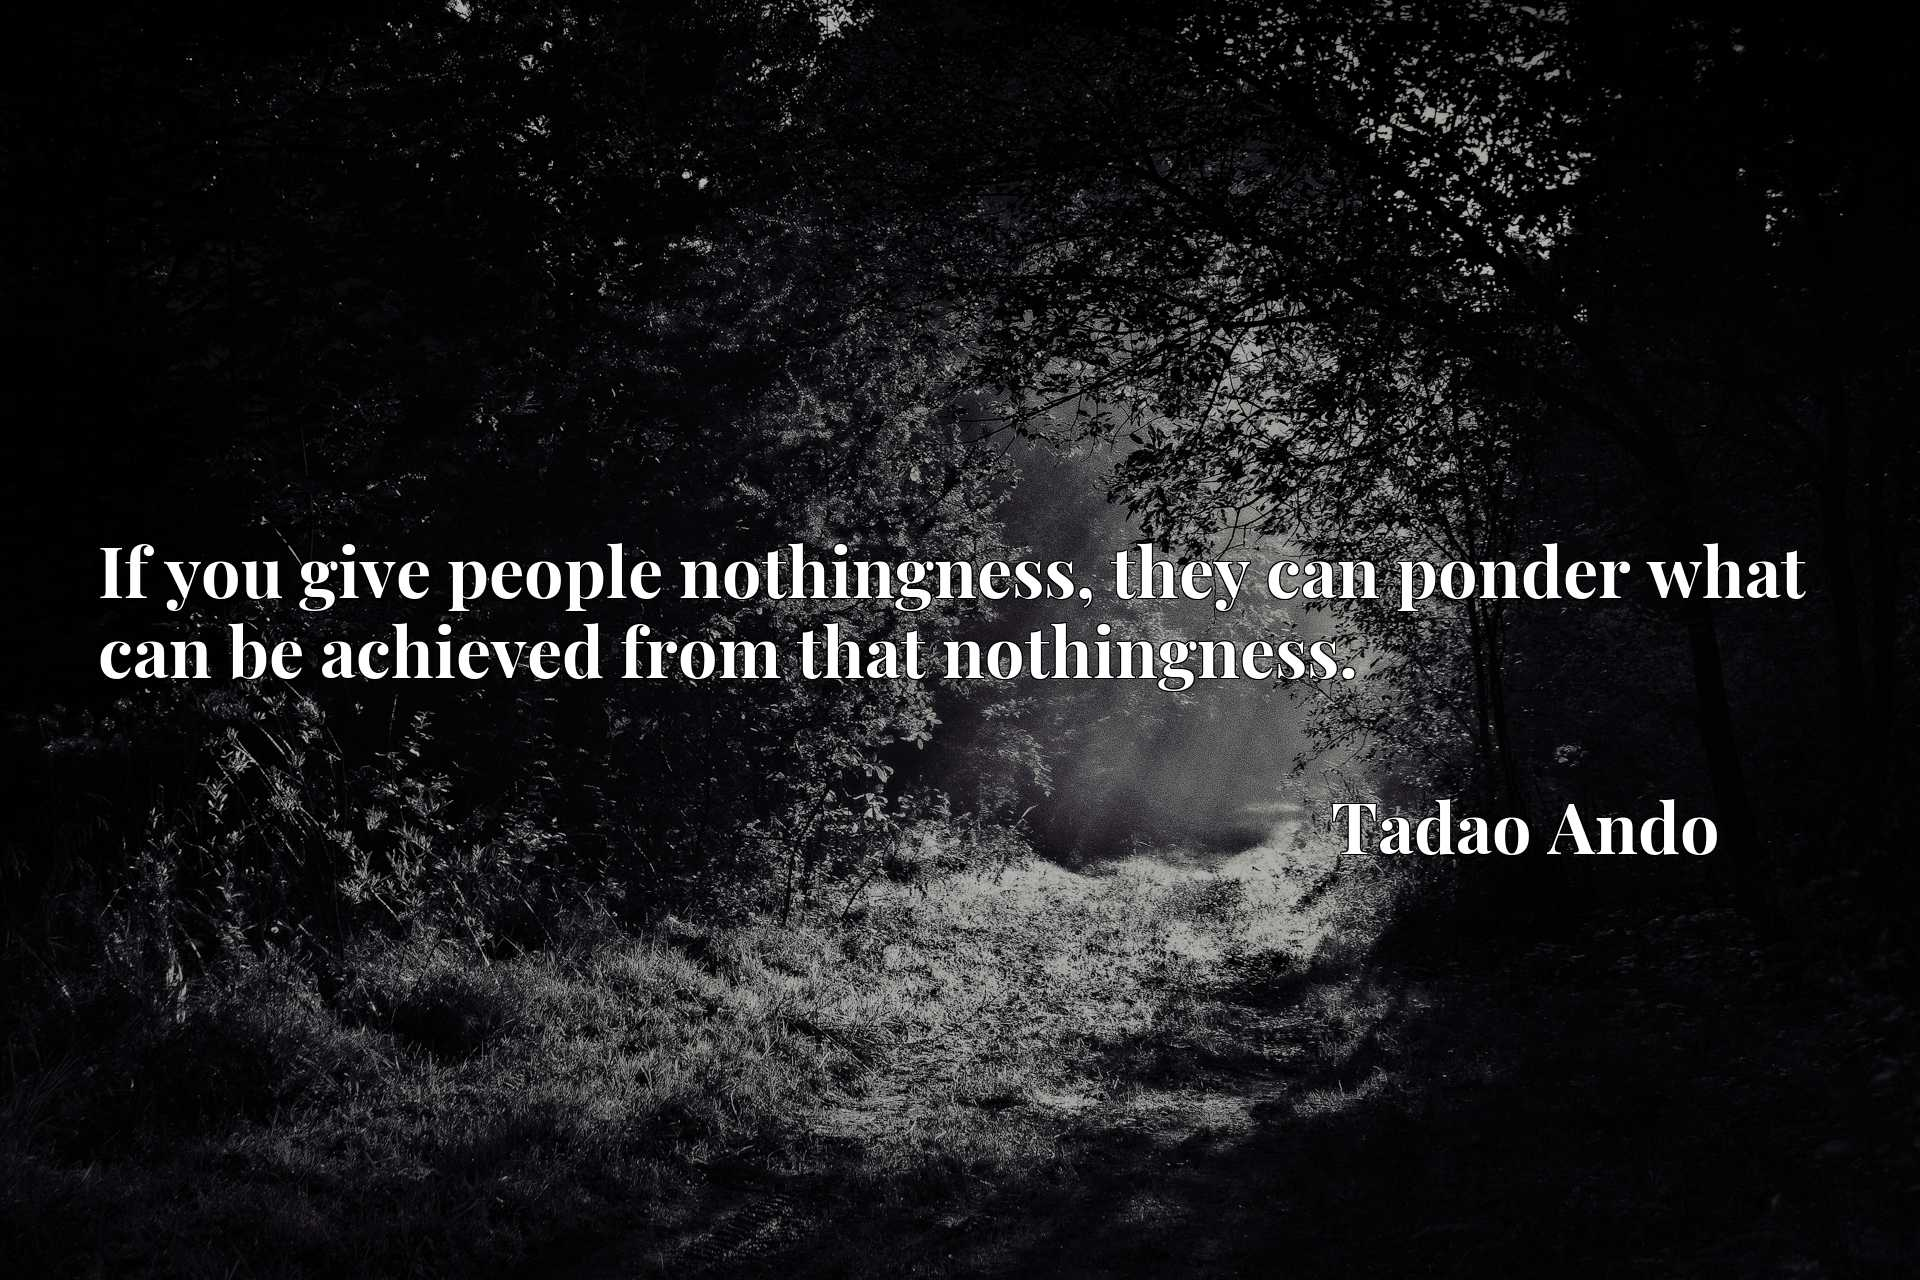 If you give people nothingness, they can ponder what can be achieved from that nothingness.